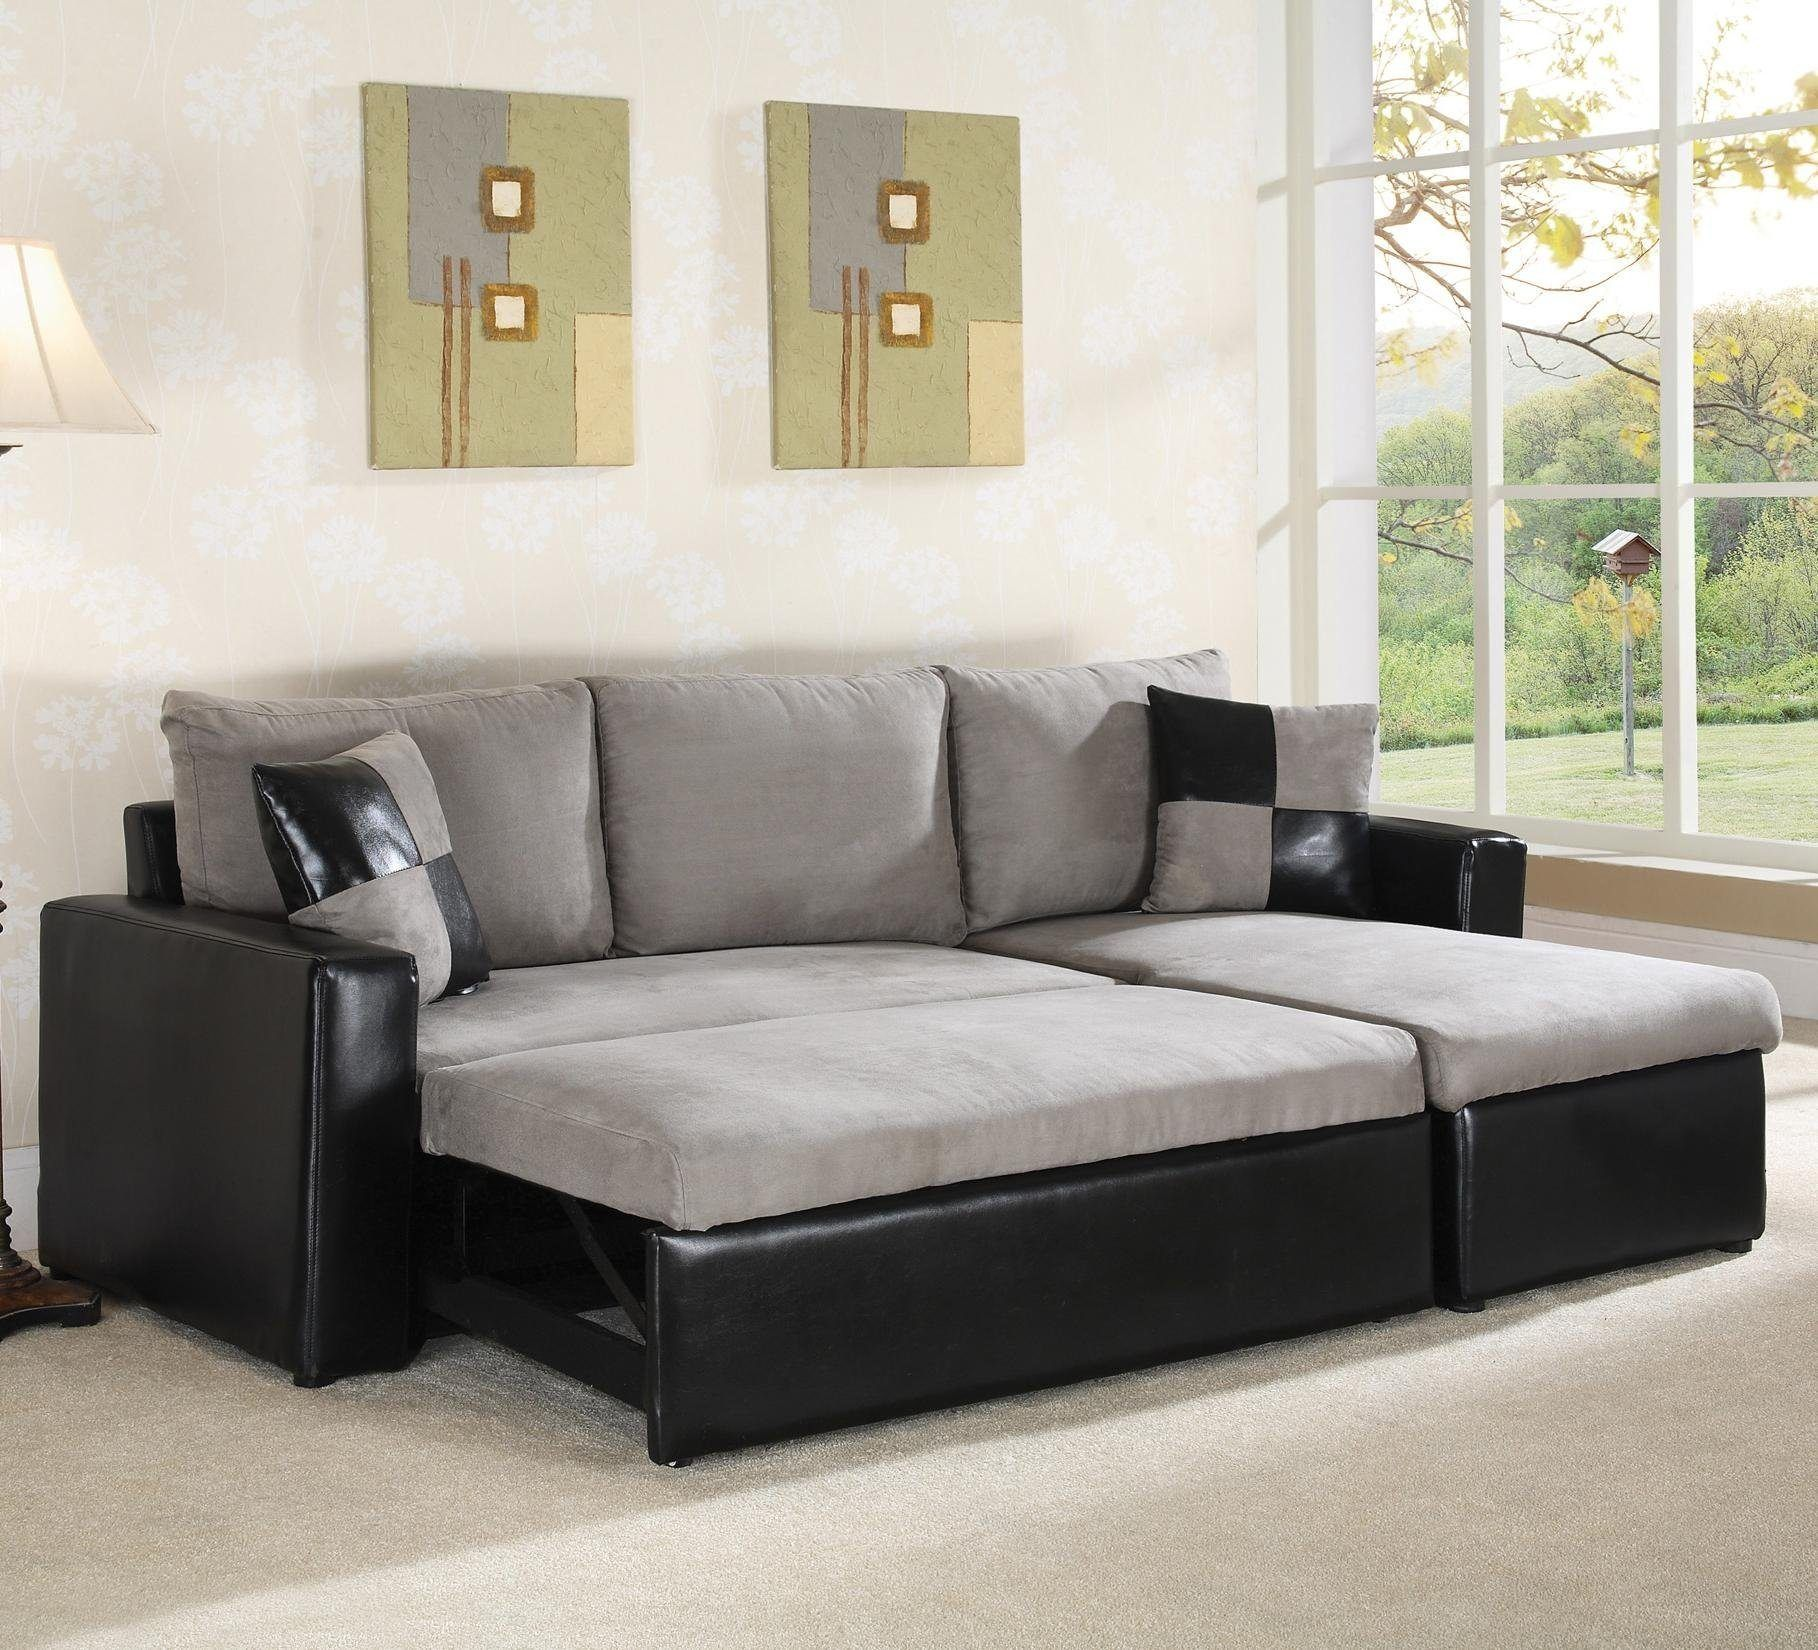 L Shaped Pull Out Couch Modern Sofa Sectional Sectional Sleeper Sofa Sectional Sofa